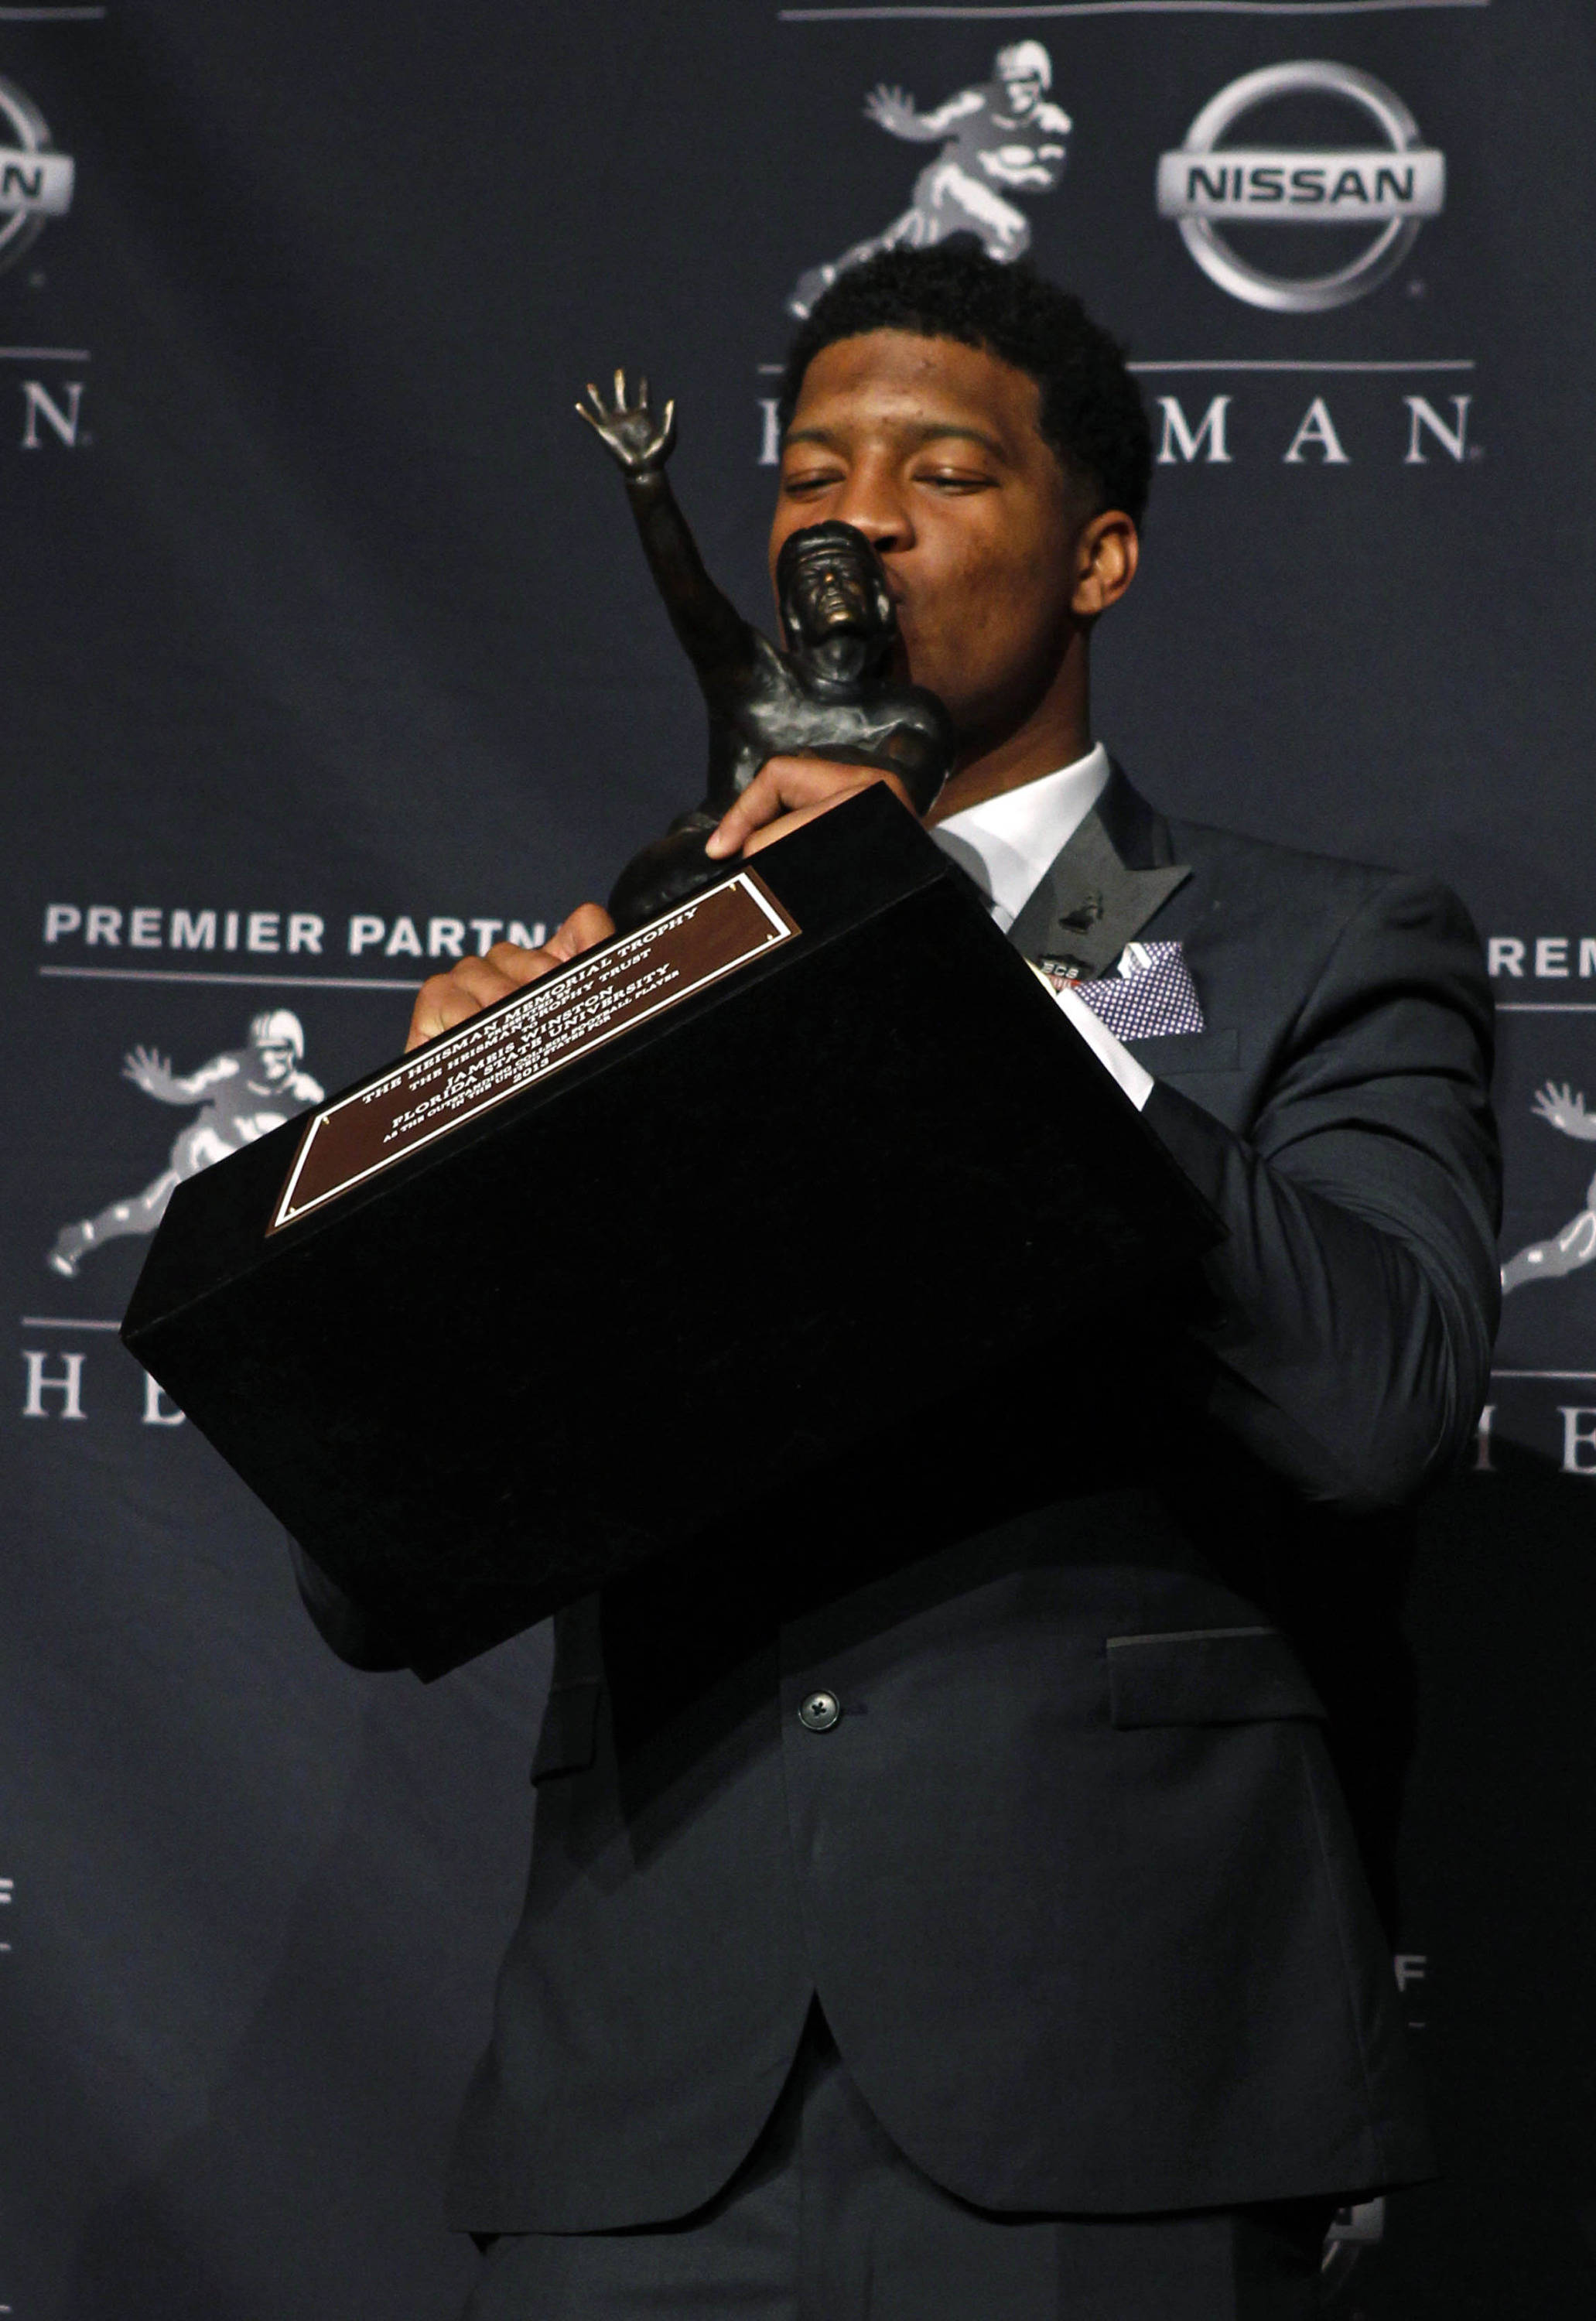 Dec 14, 2013; New York, NY, USA; Seminoles quarterback Jameis Winston kisses the trophy after being awarded the 2013 Heisman Trophy. Adam Hunger-USA TODAY Sports